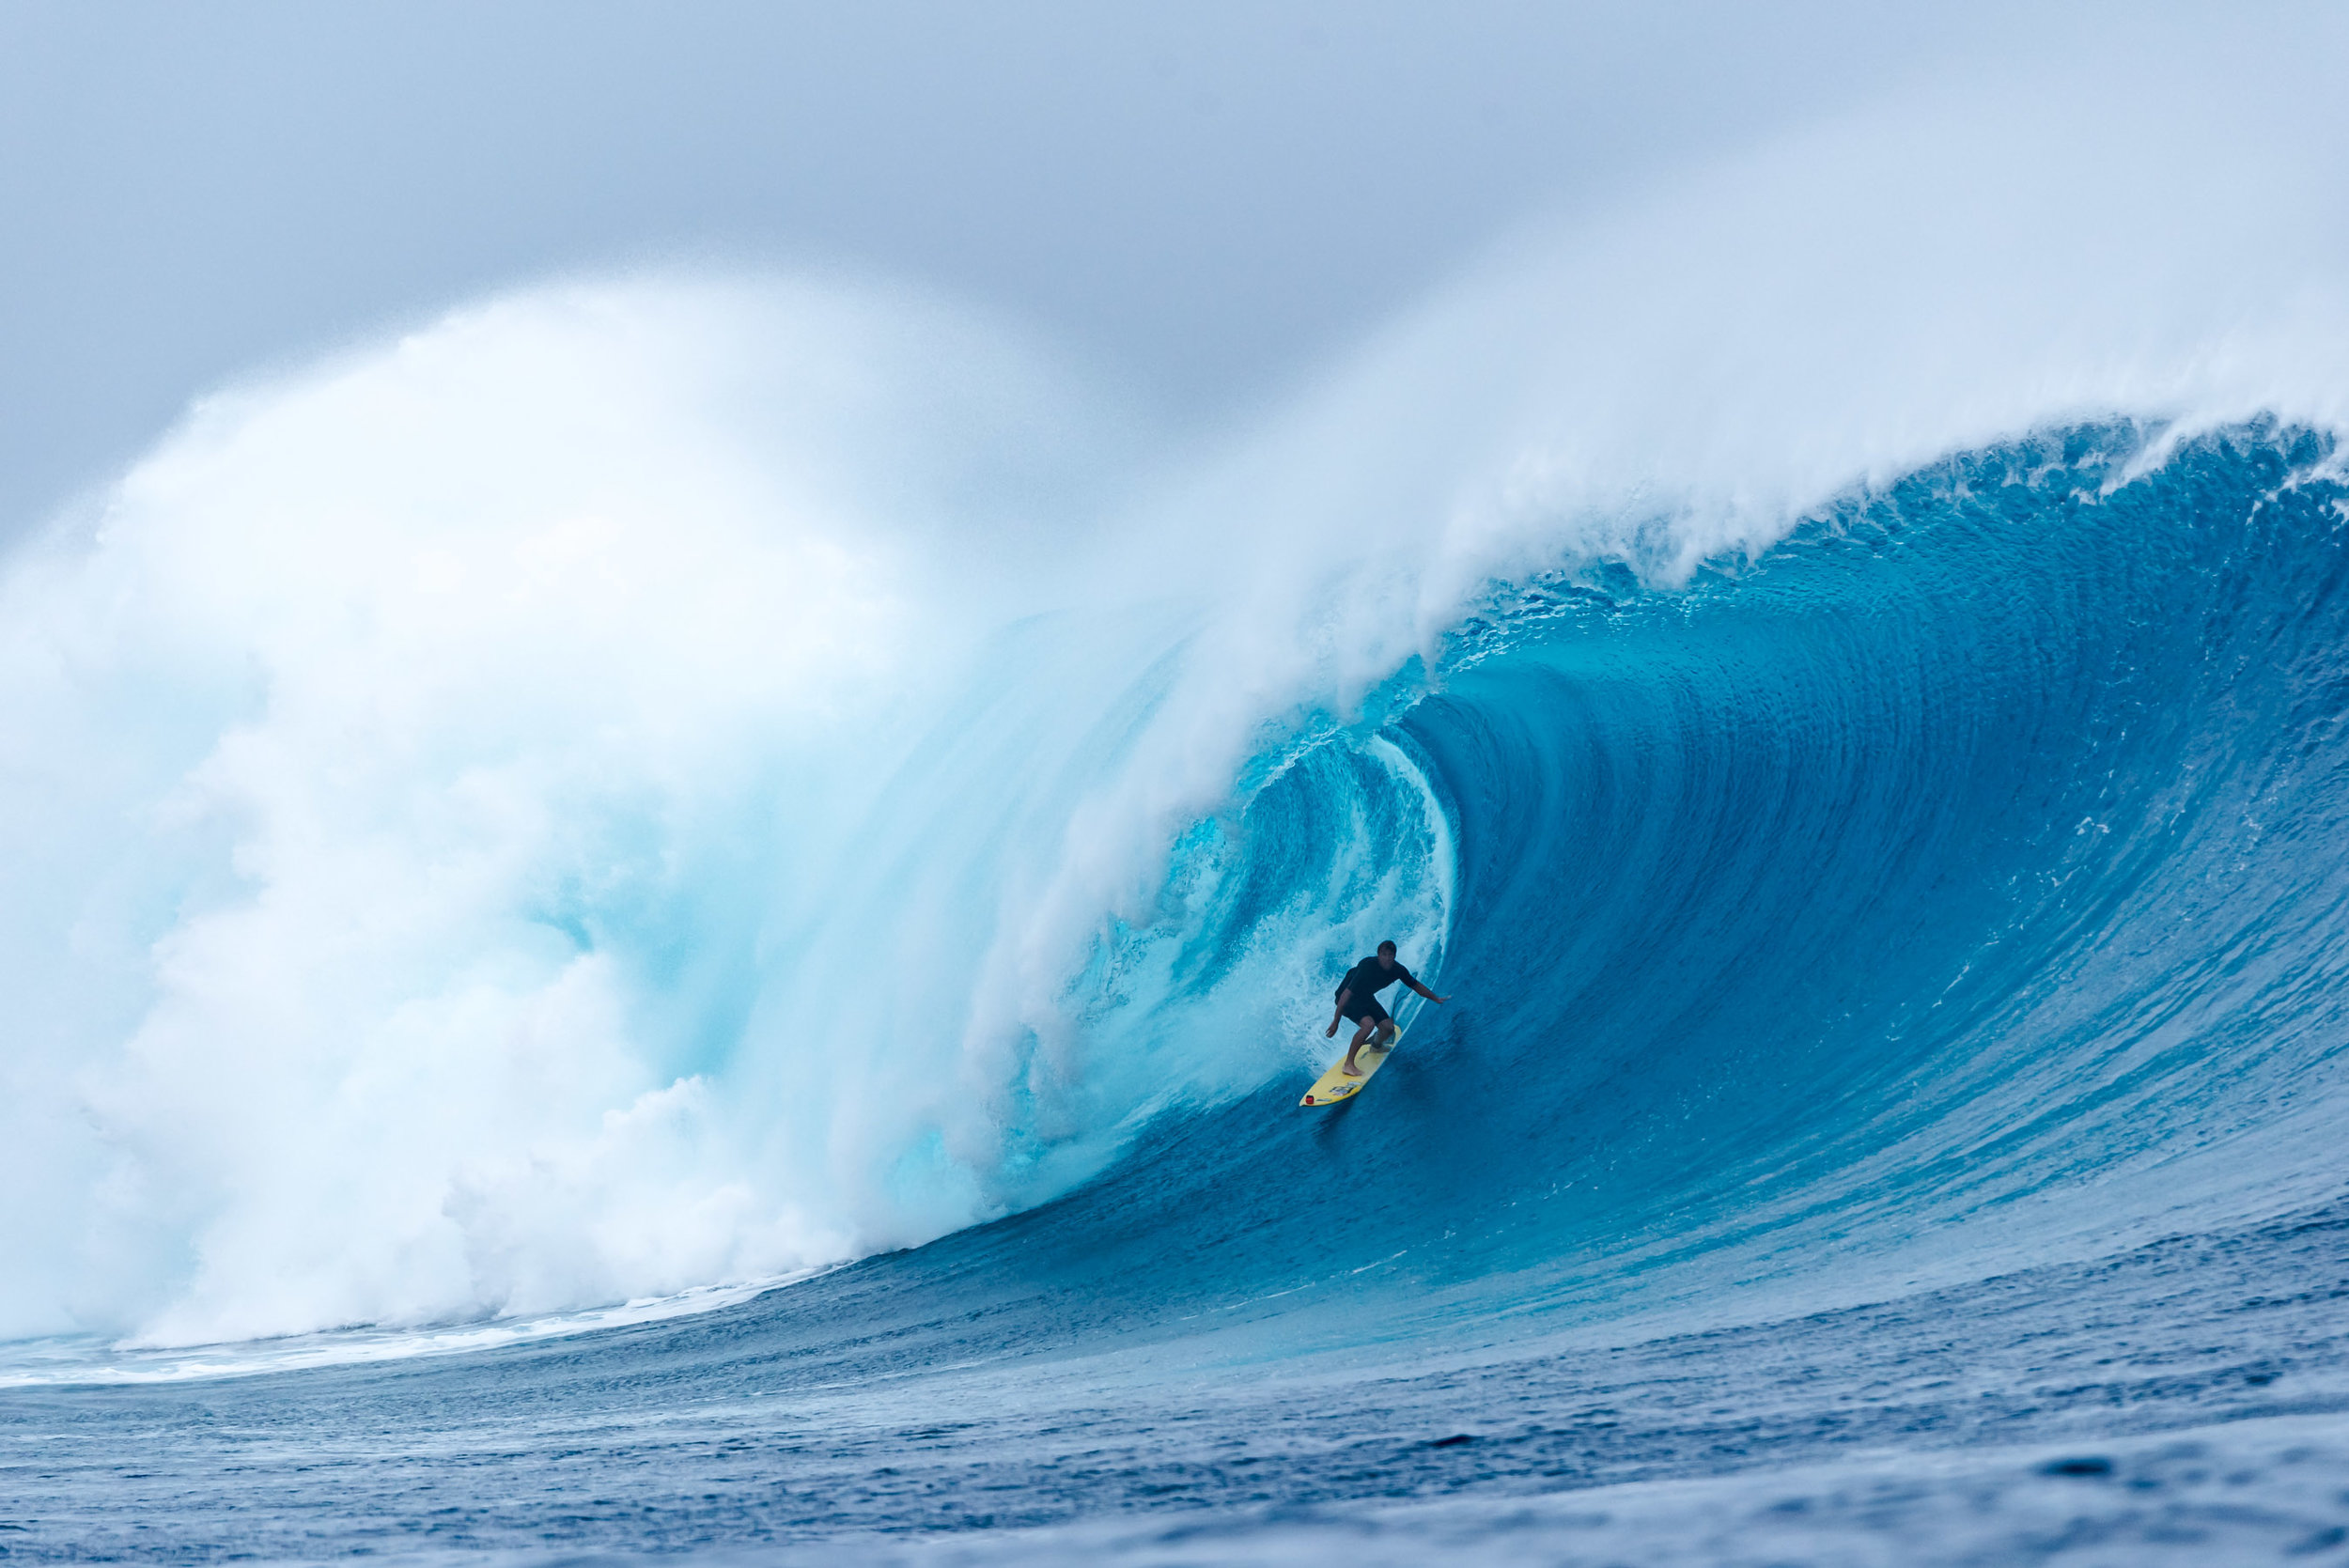 Sequence - How to take amazing surfing photos every time-8.jpg